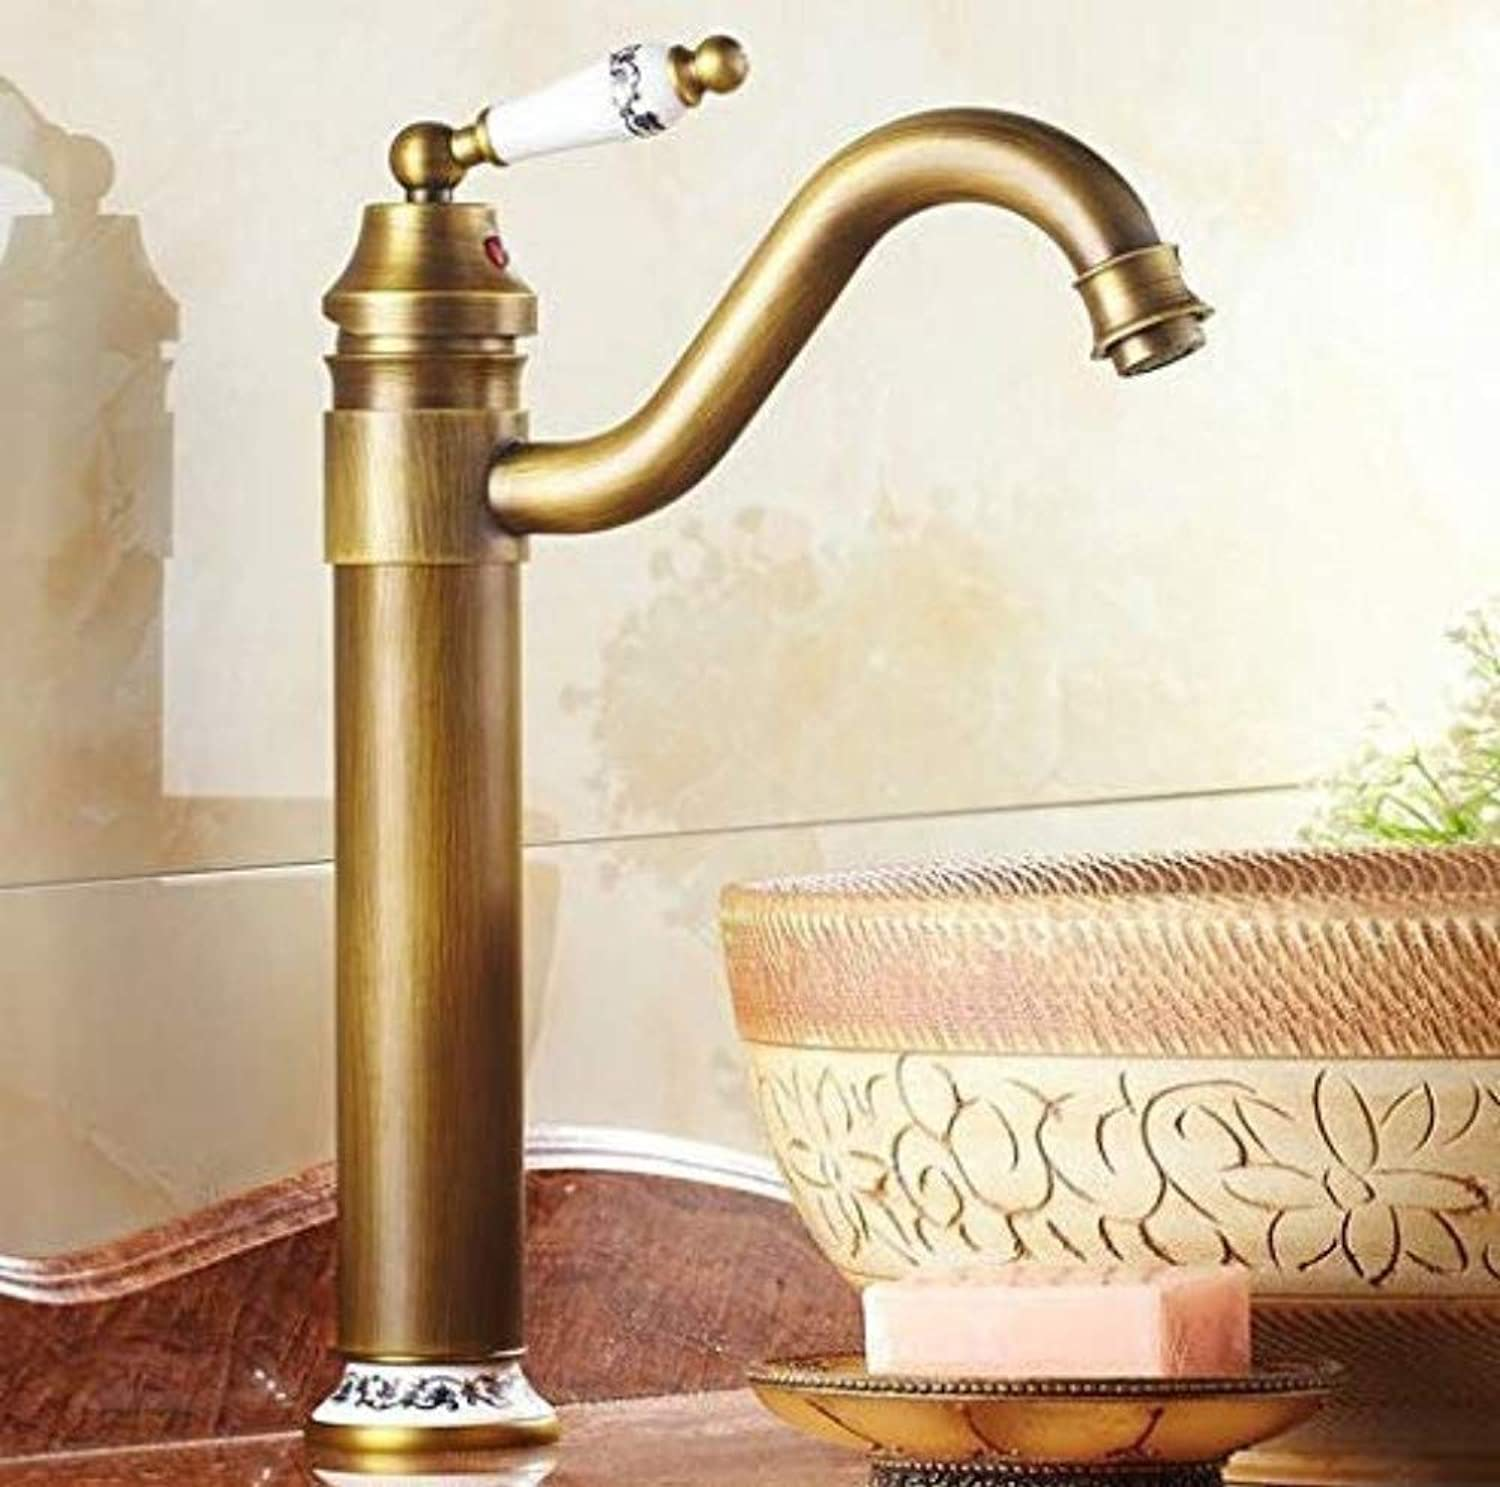 Kitchen Brass Retroretro Deluxe Faucetinging Basin Faucet Single Handle gold Faucet Bathroom Toilet Basin Tap